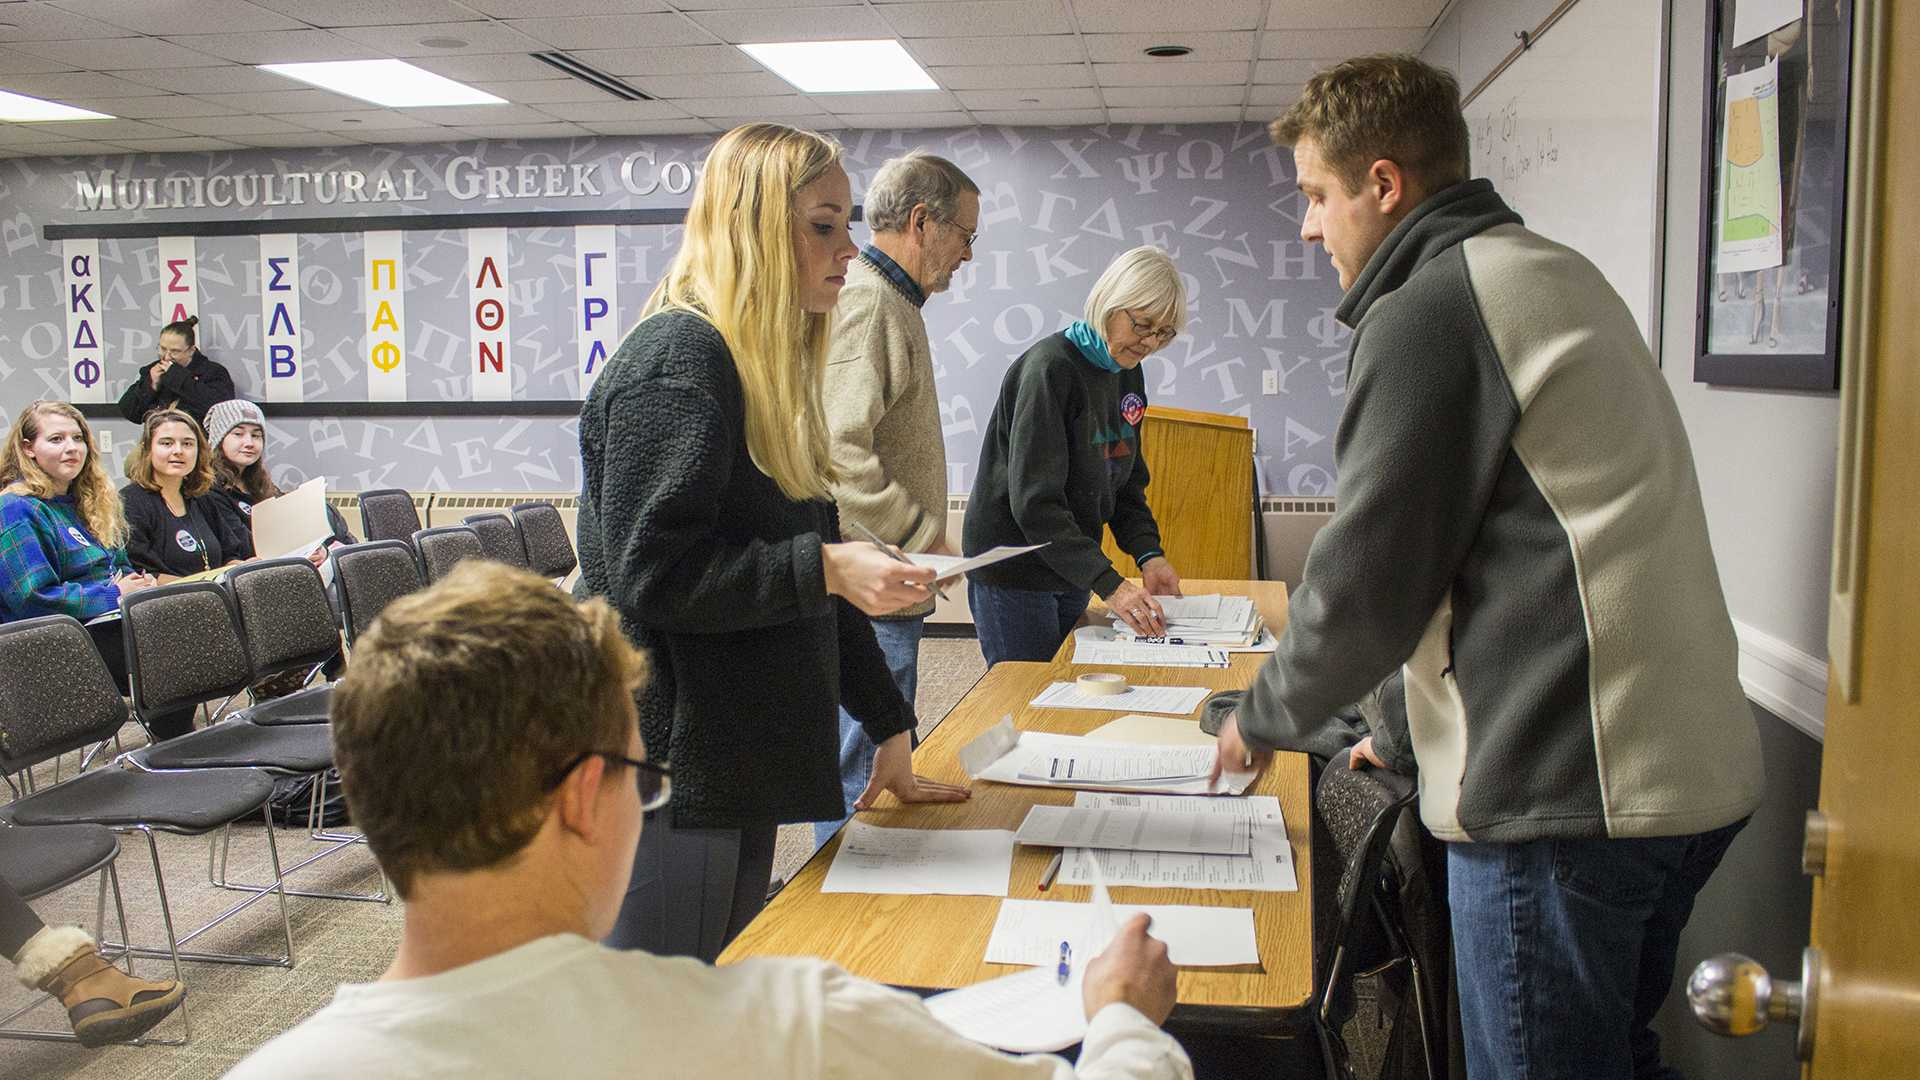 Precinct captains organize before calling precincts to order during the Iowa Democratic Caucus at the IMU on Monday, Feb. 5, 2018. The IMU contains 6 different precincts for Iowa City. (Lily Smith/The Daily Iowan)